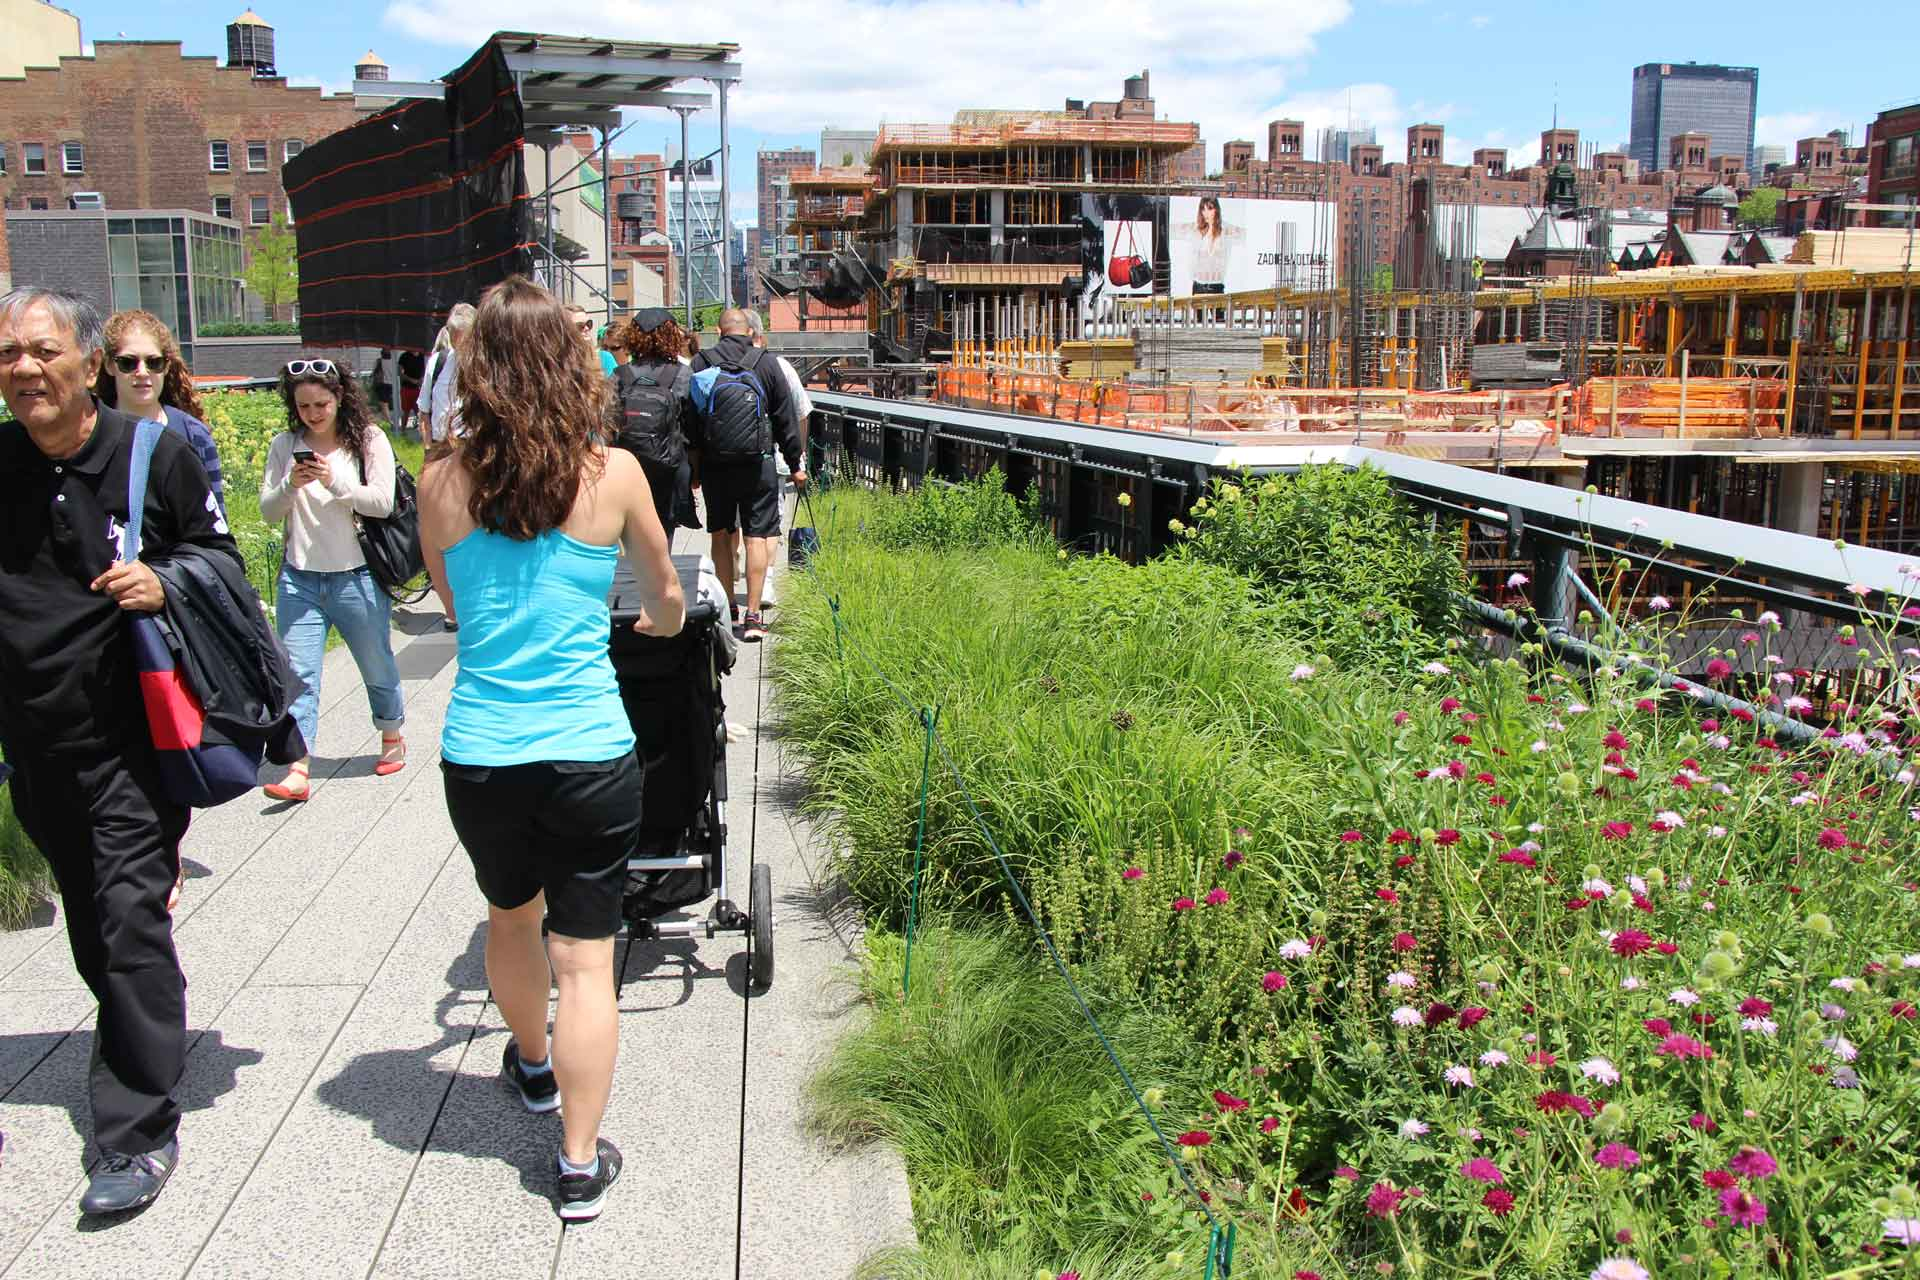 Walking the High Line NYC with a stroller